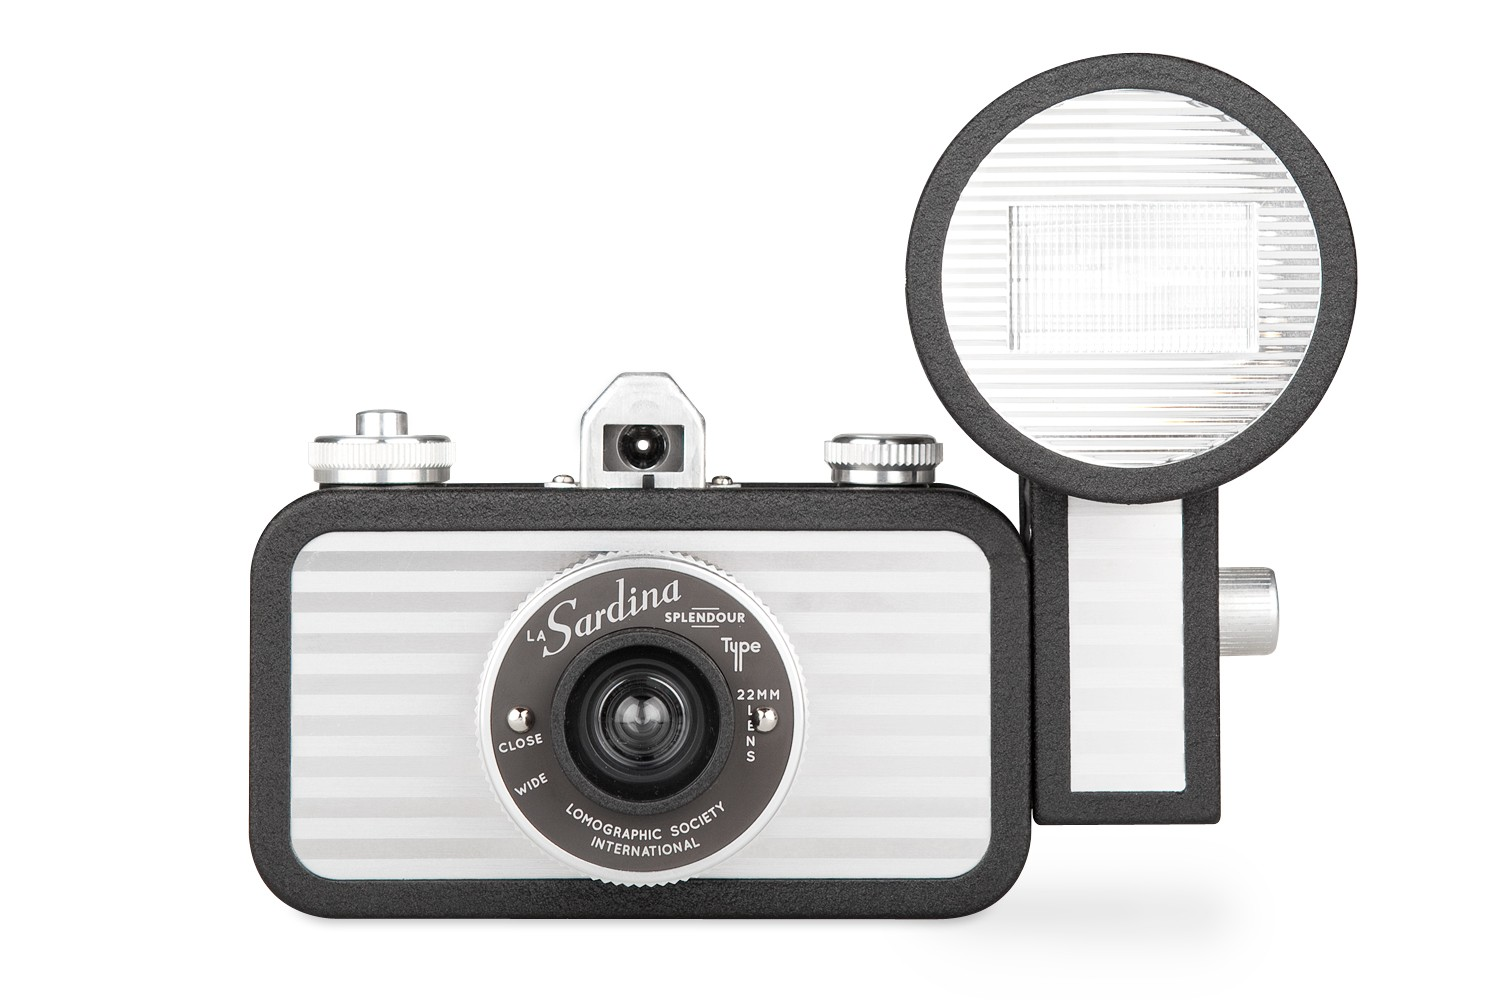 La Sardina Camera and Flash (Splendour Edition)